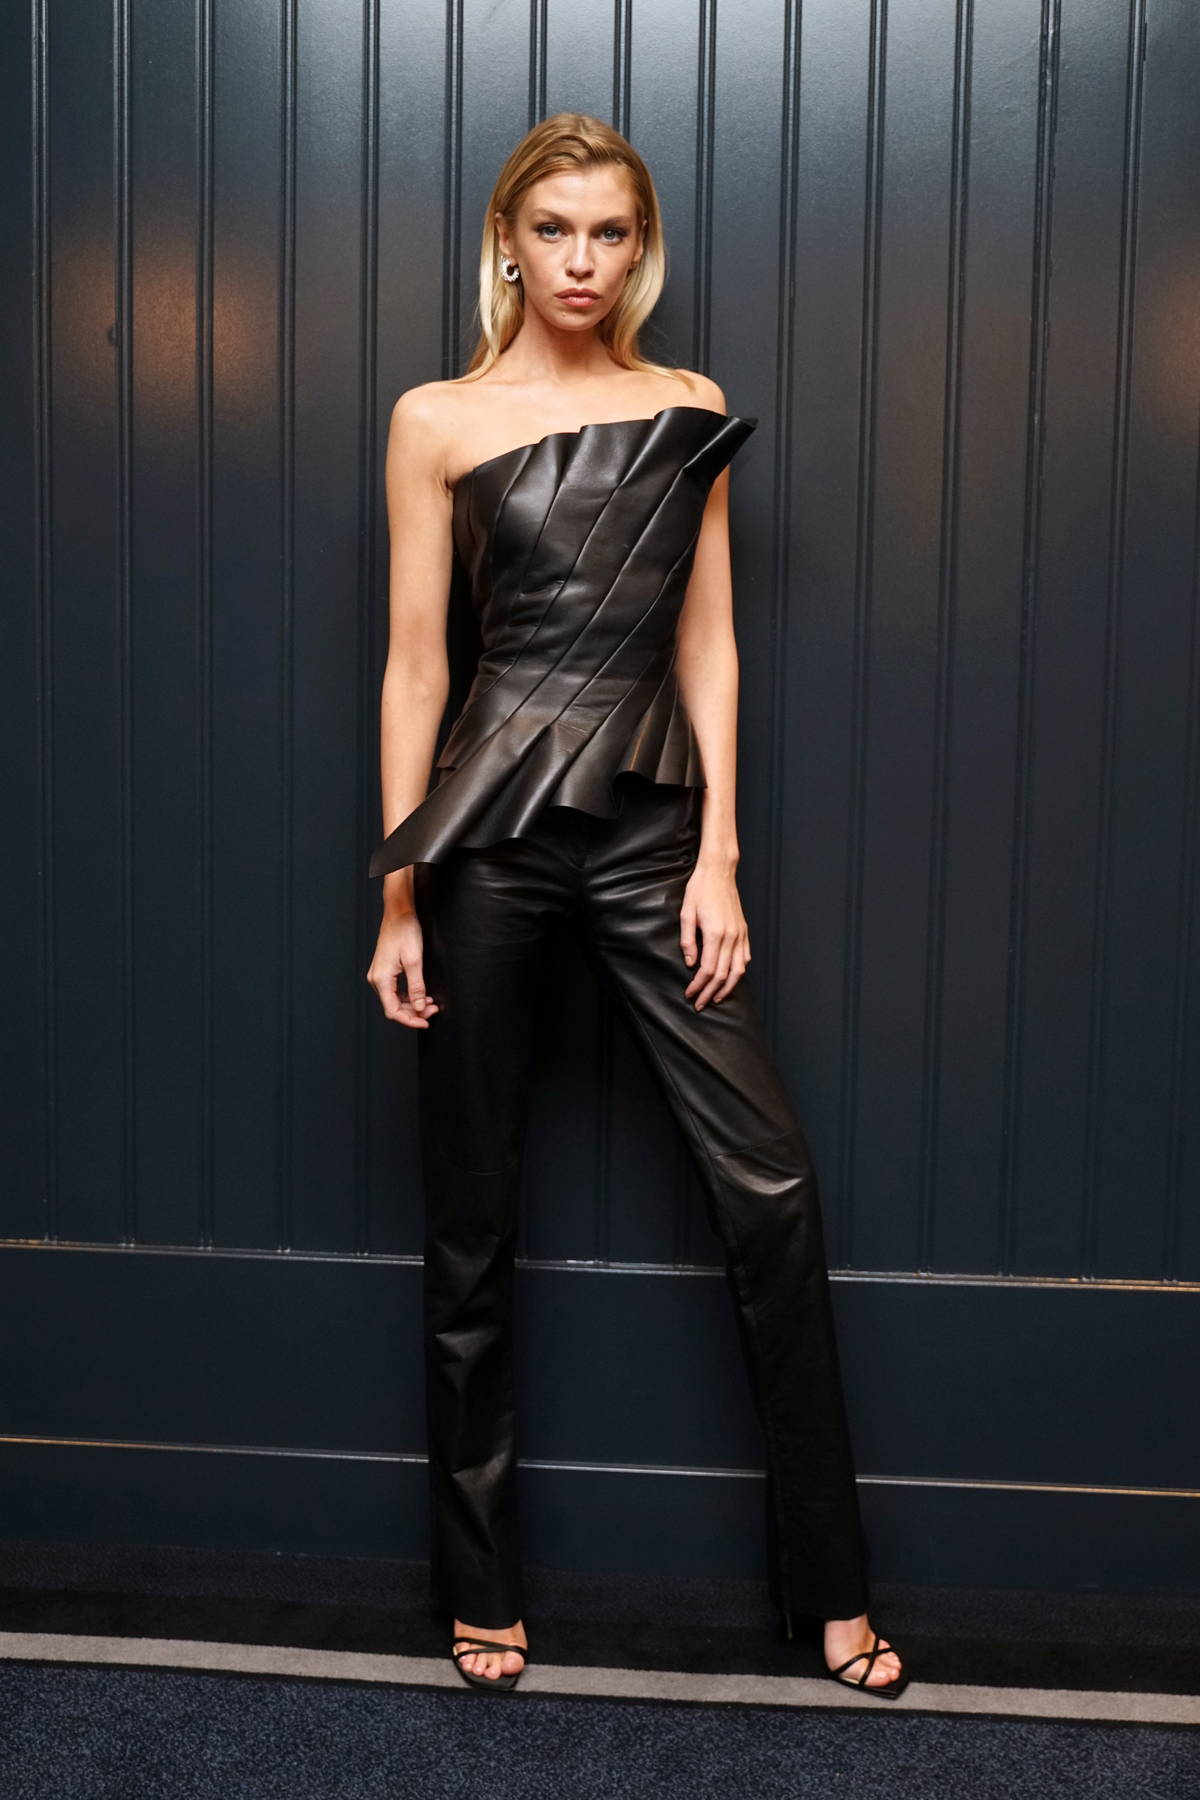 Stella Maxwell attends the 2021 CR Fashion Week party during New York Fashion Week in New York City